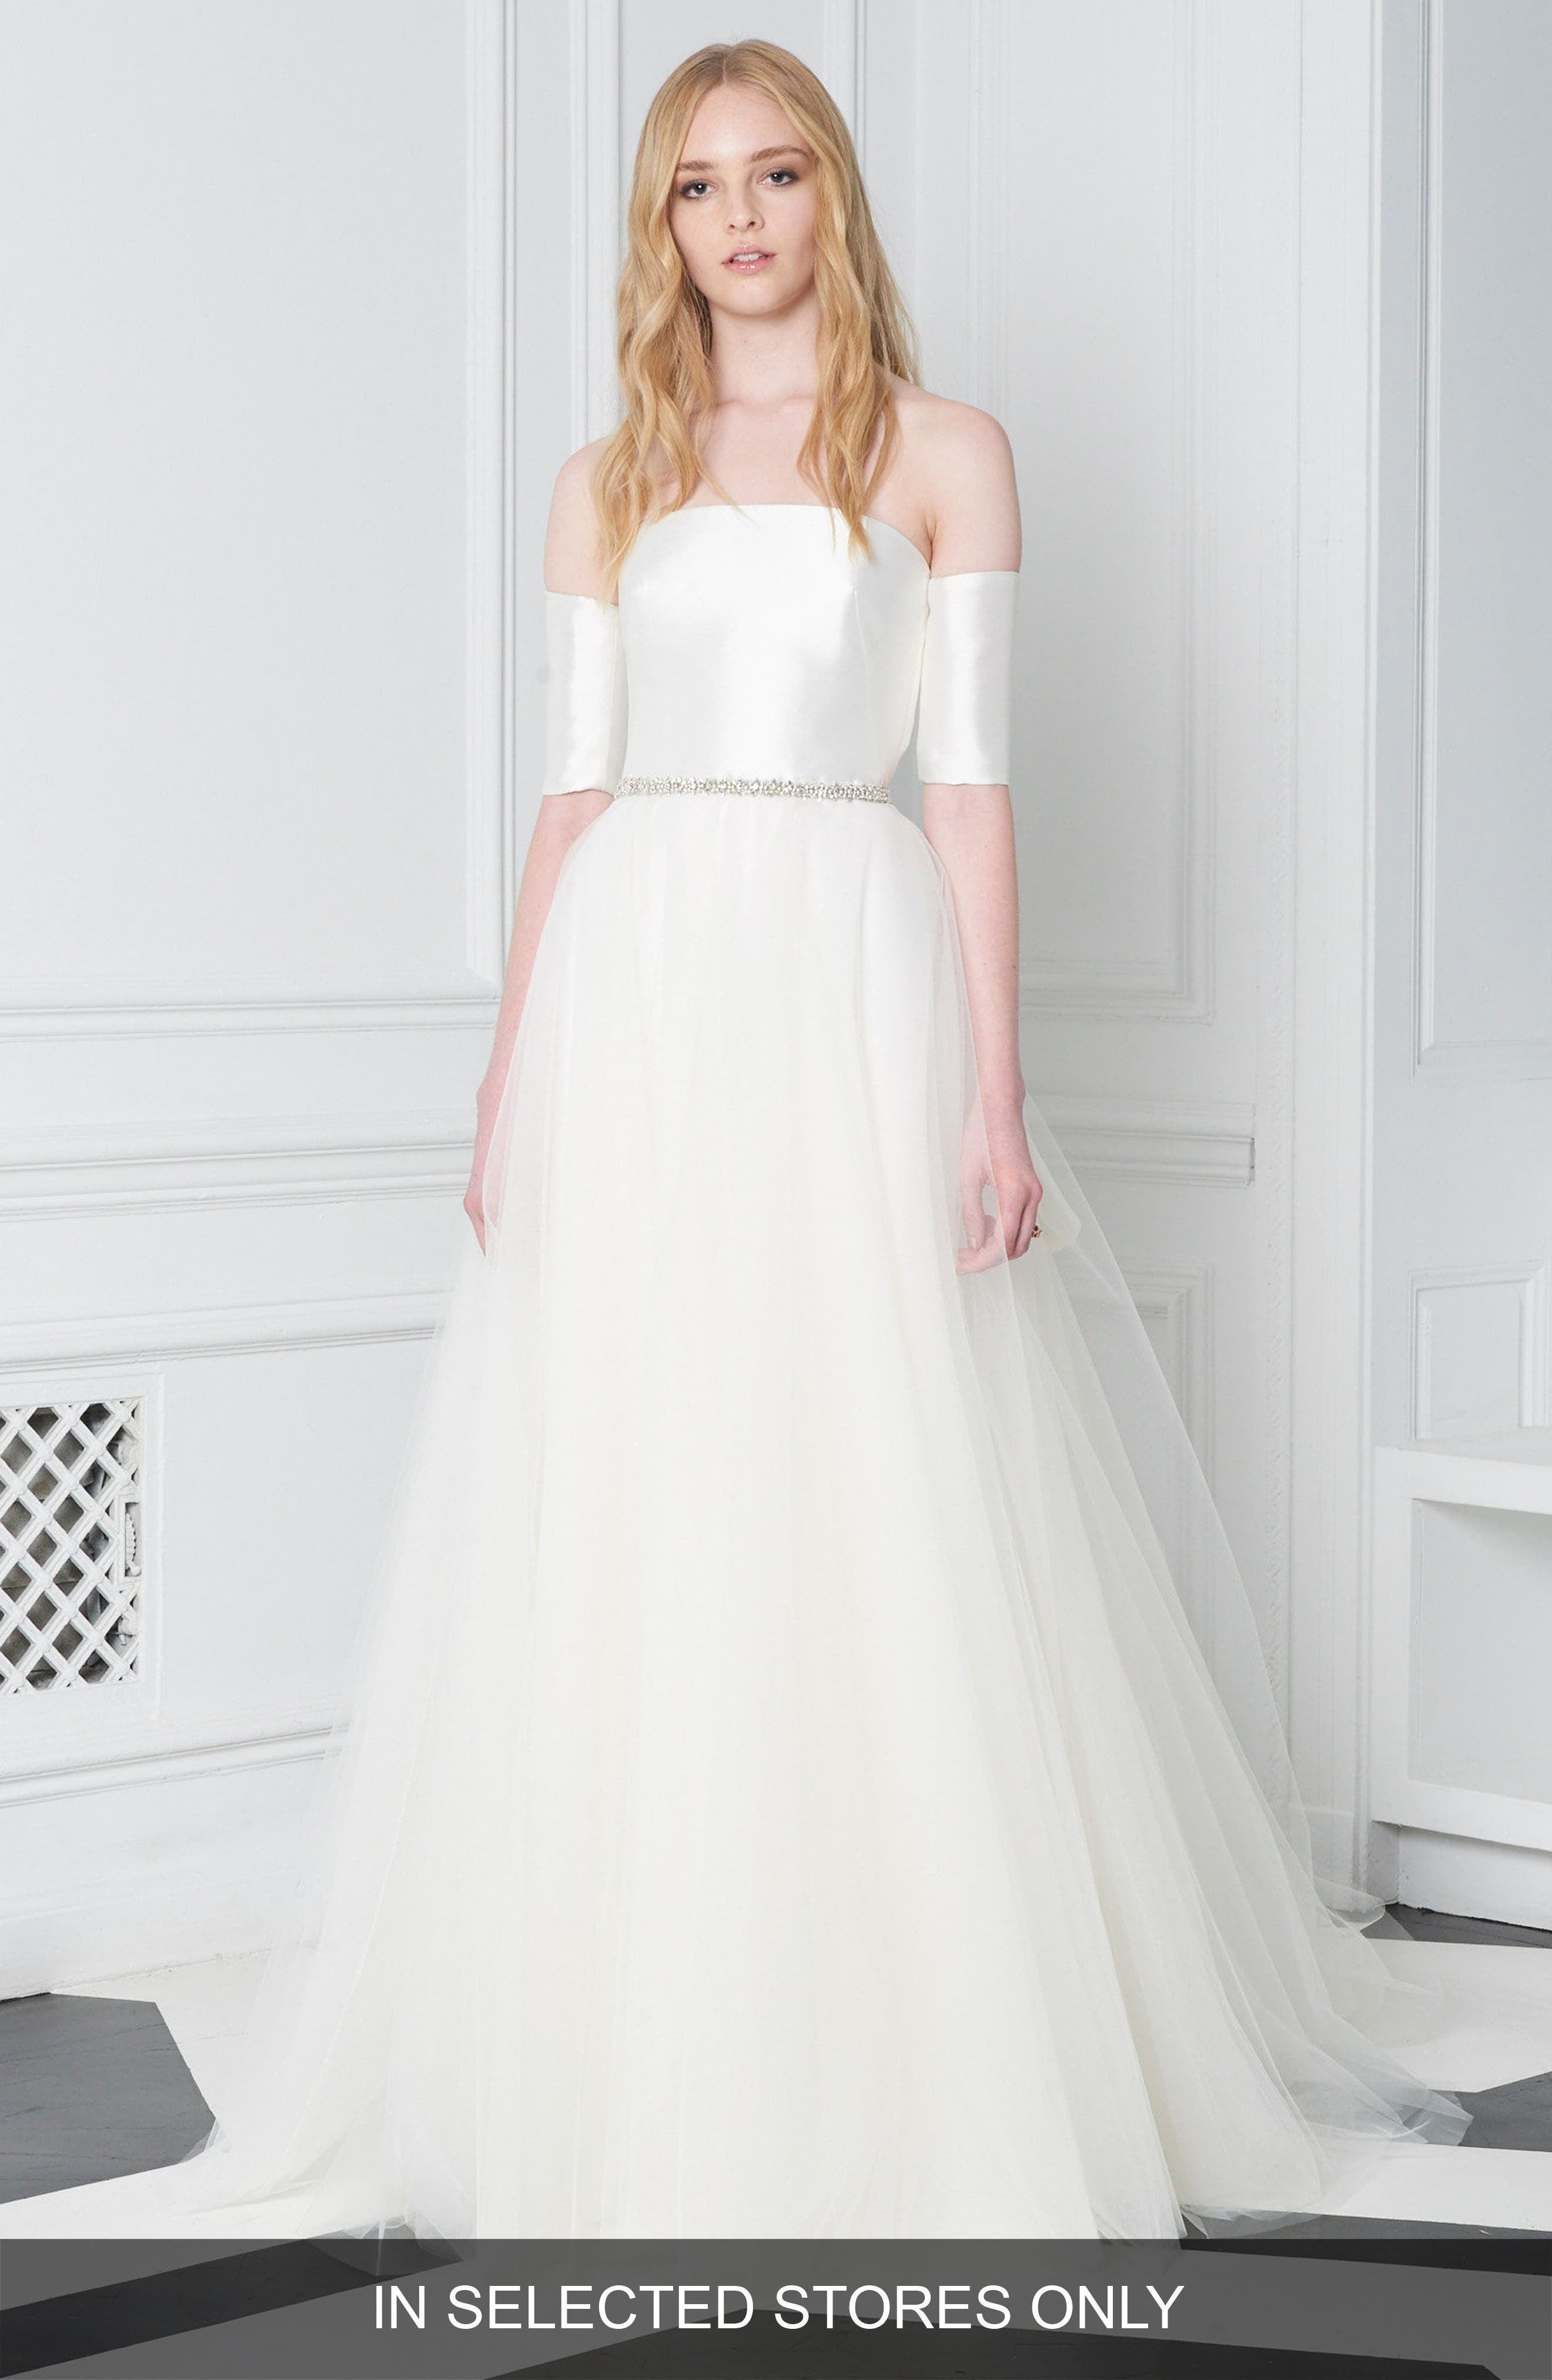 Alternate Image 1 Selected - BLISS Monique Lhuillier Off the Shoulder Crystal Waist Ballgown